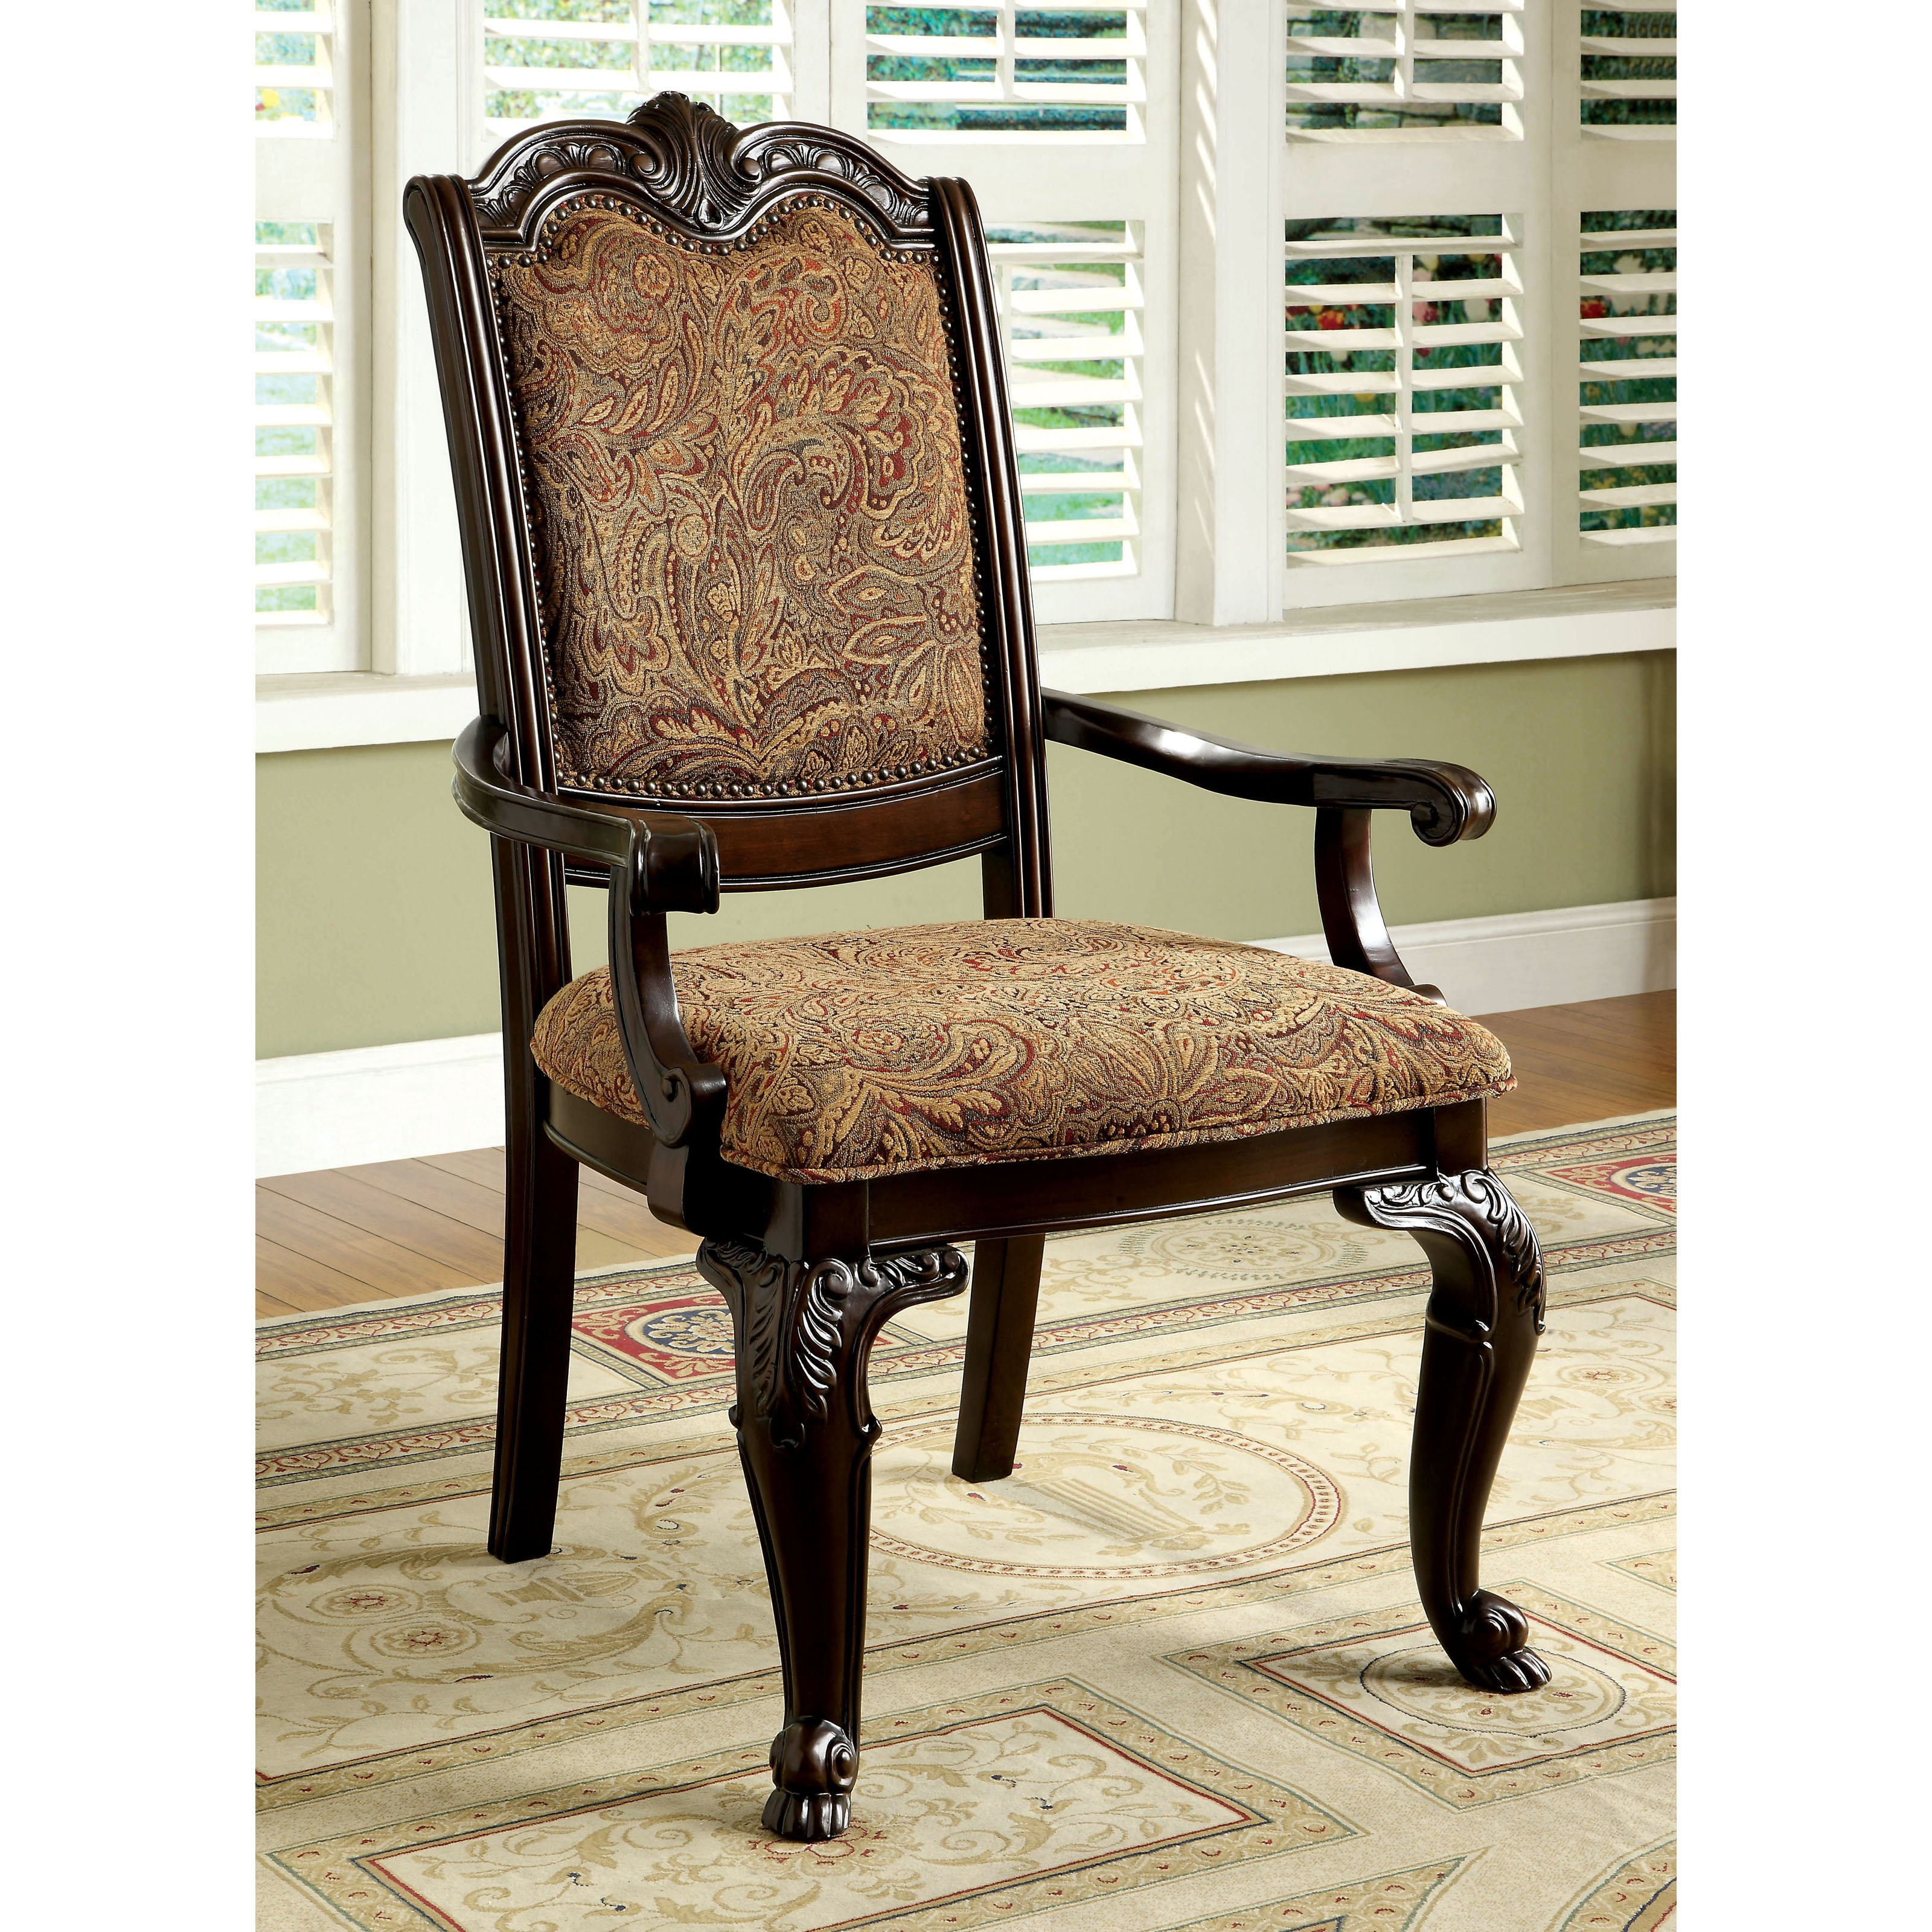 Furniture of America Bershire Fabric Padded Dining Armchairs Set of 2 by Enitial Lab